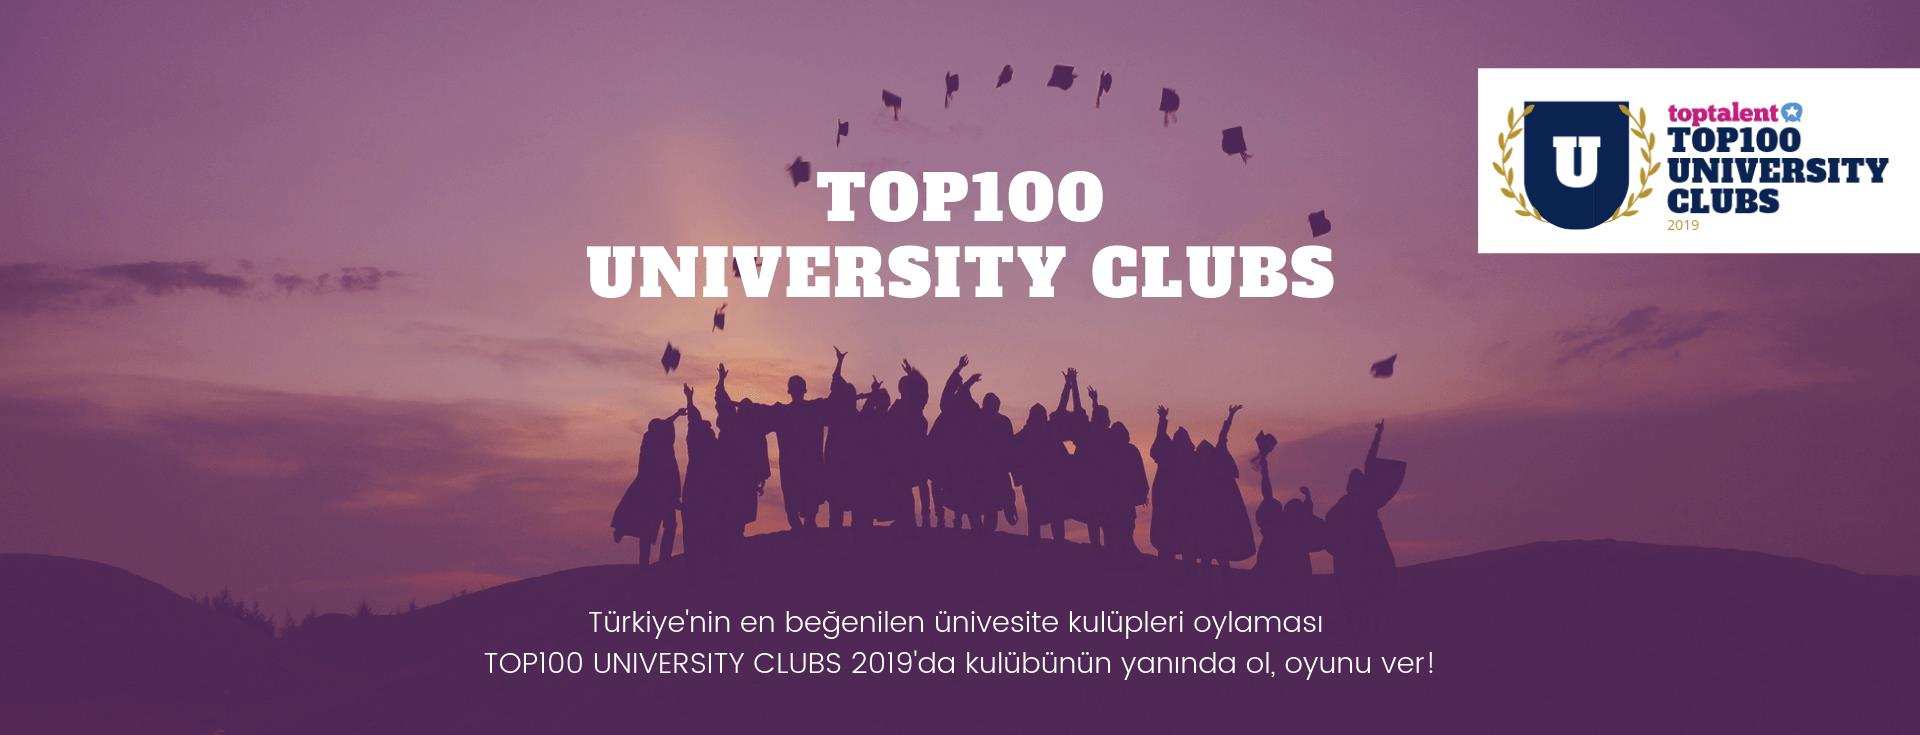 TOP100 UNIVERSITY CLUBS